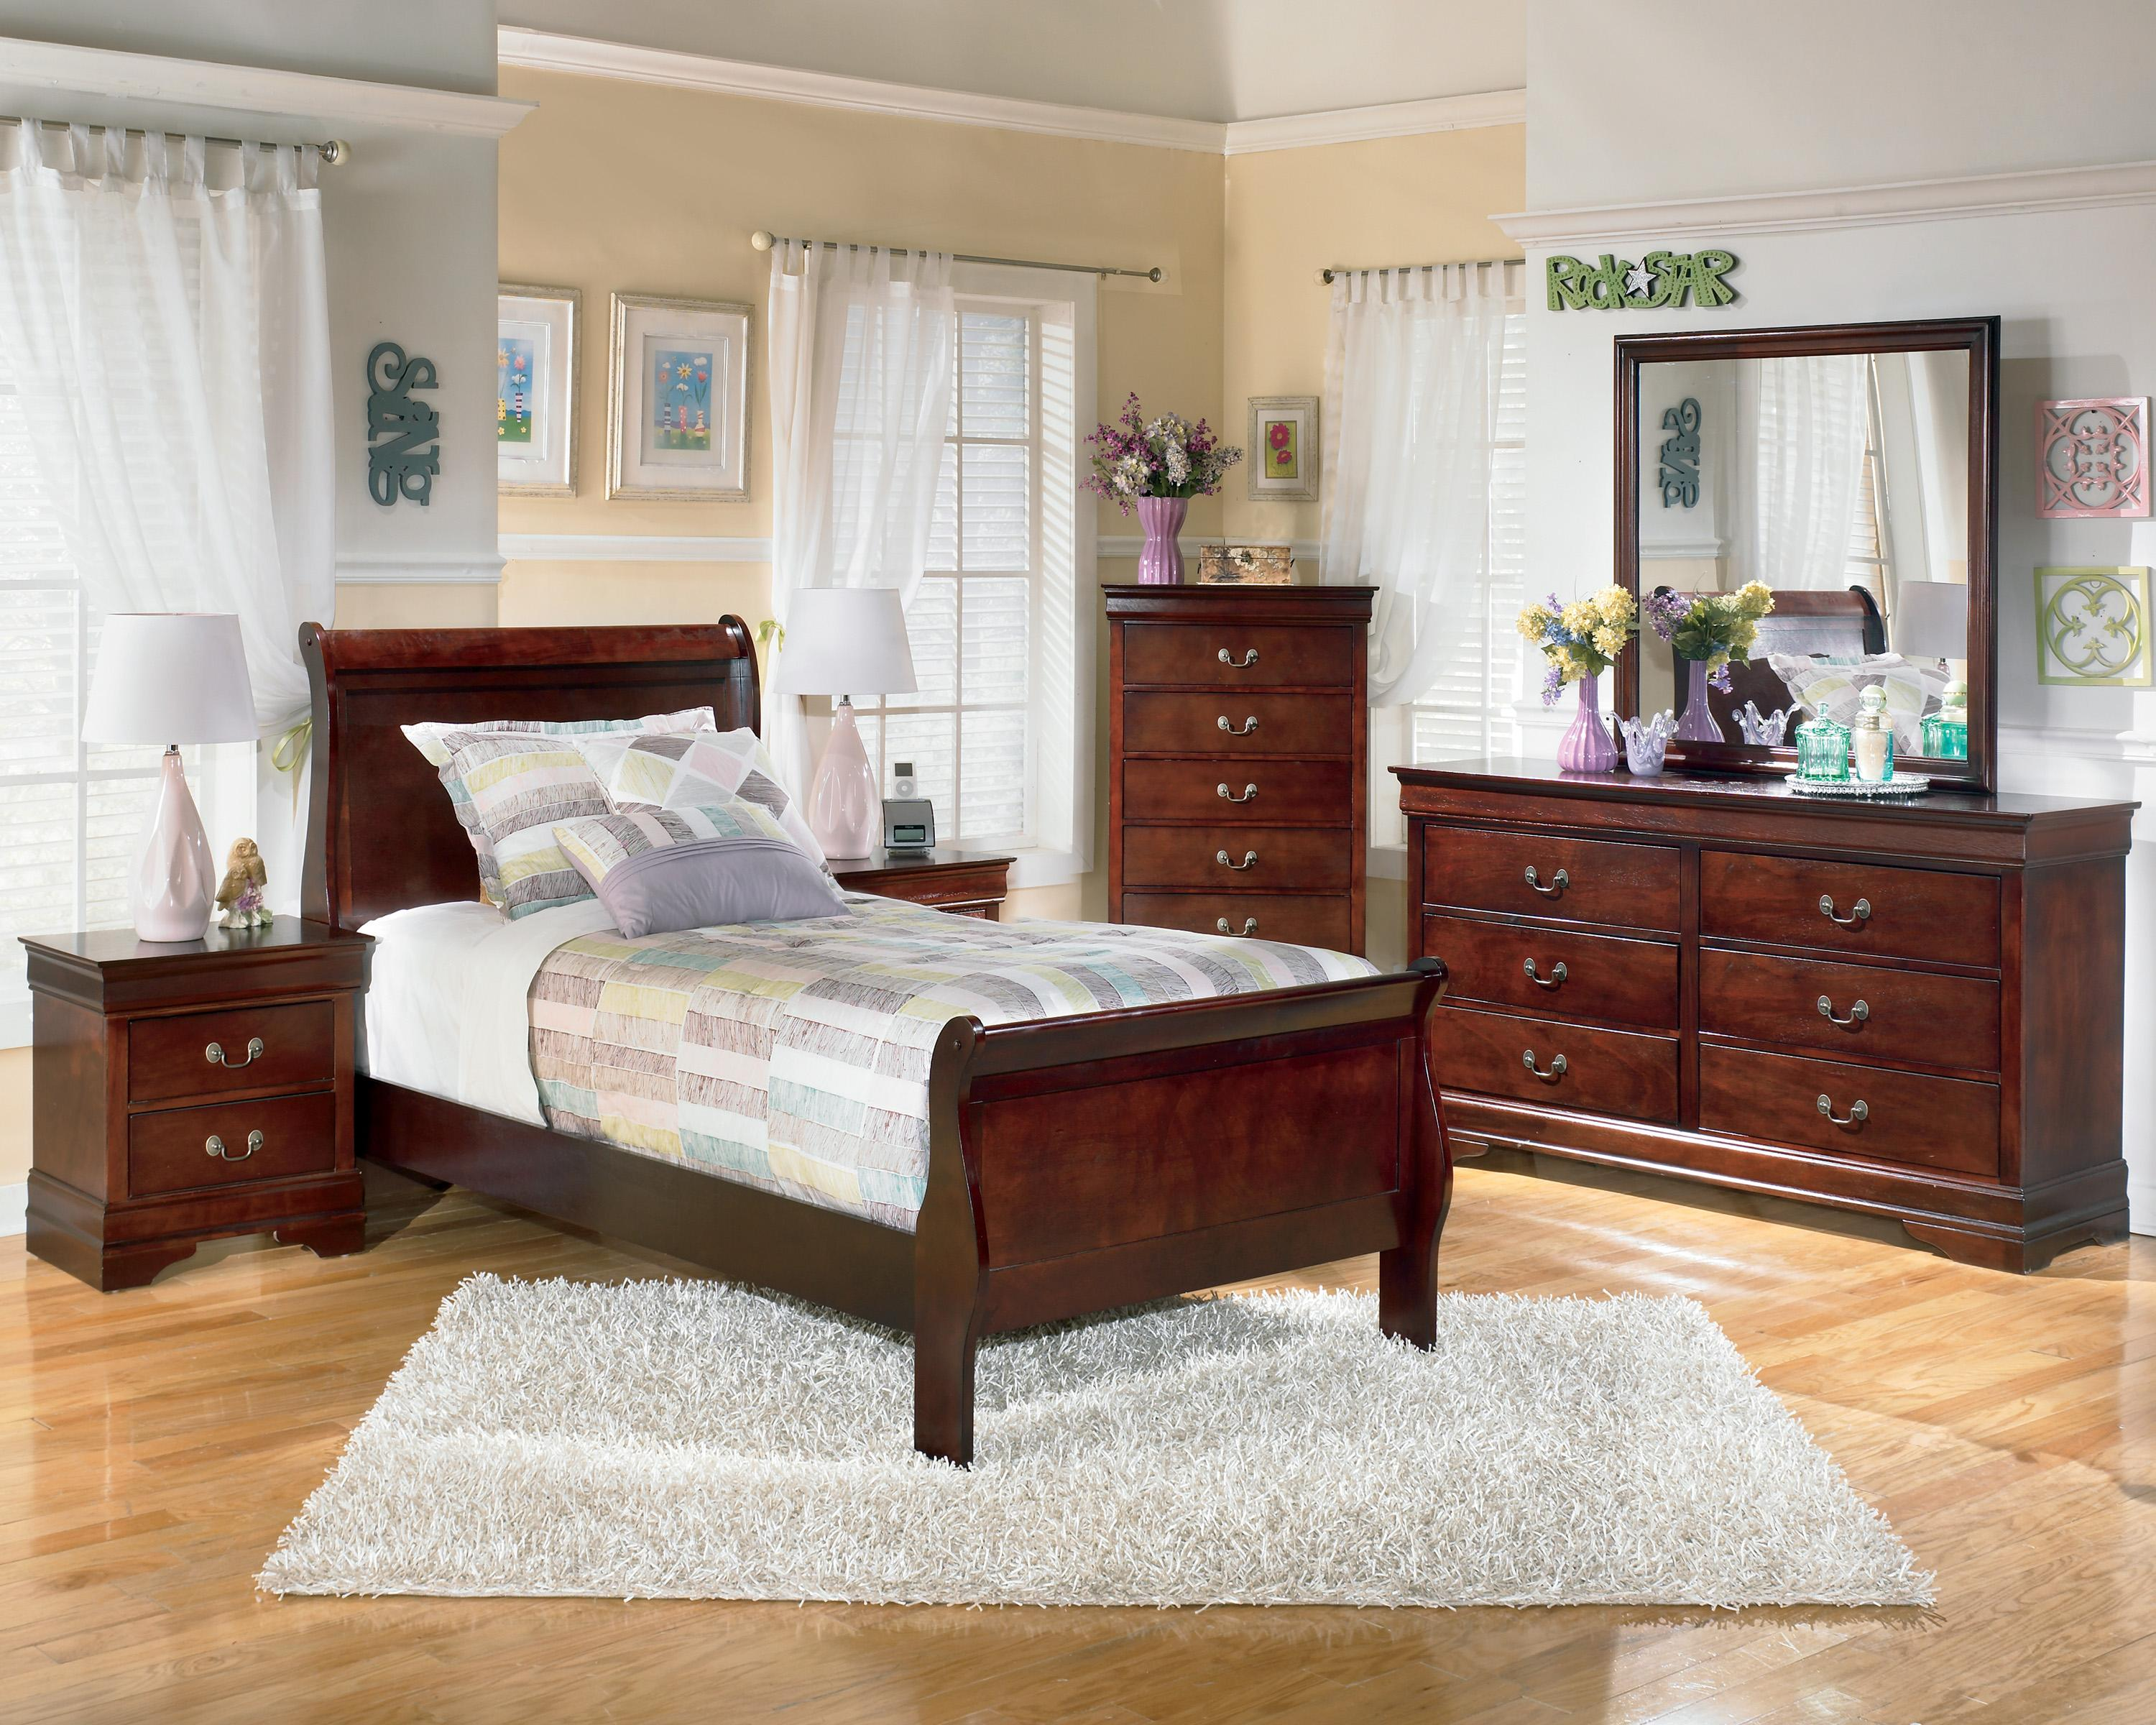 Signature Design by Ashley Alisdair 3 Piece Twin Bedroom Group - Item Number: B376 T Bedroom Group 1